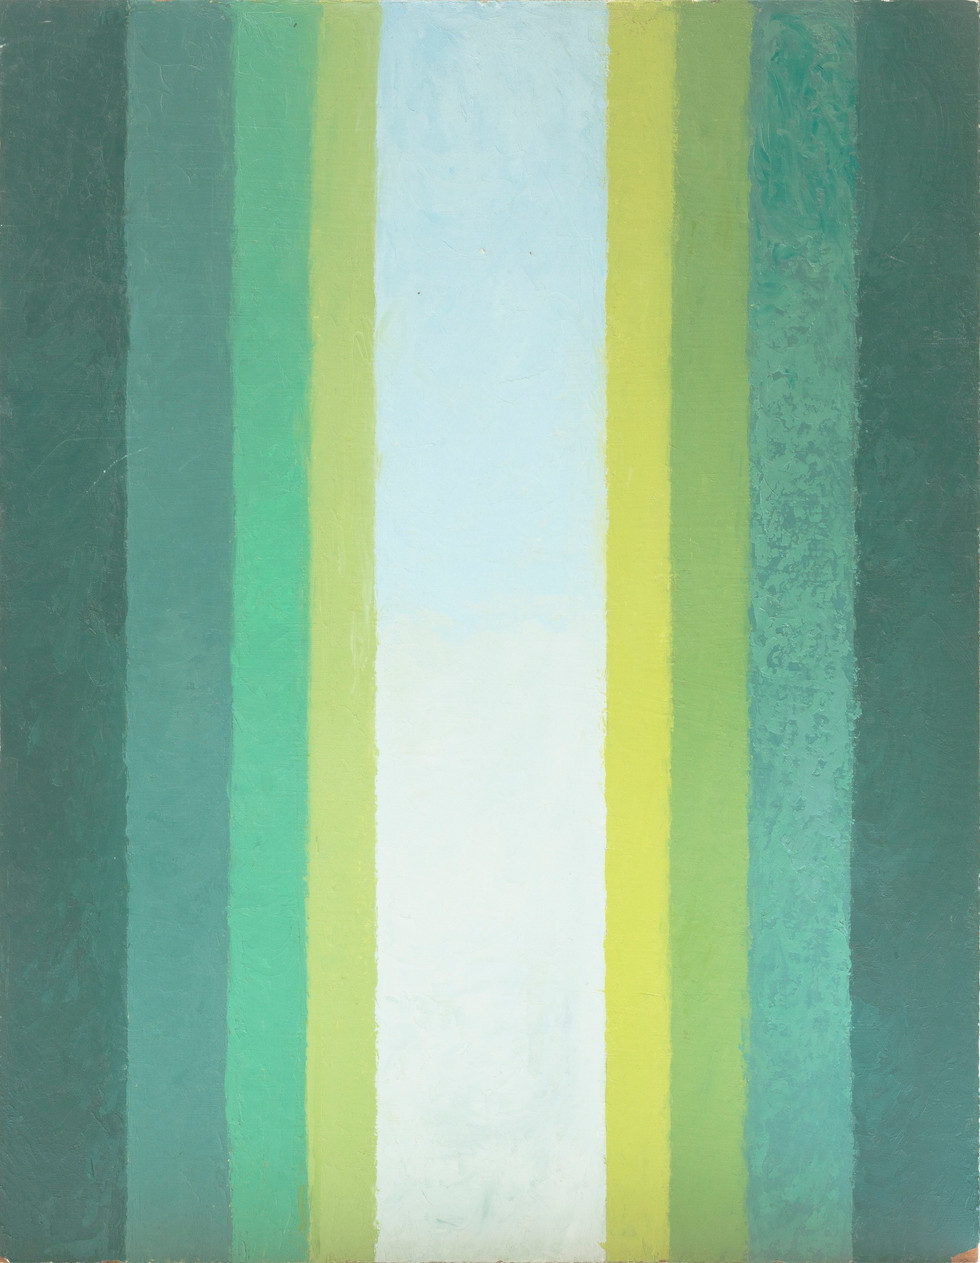 Untitled - vertical green stripes